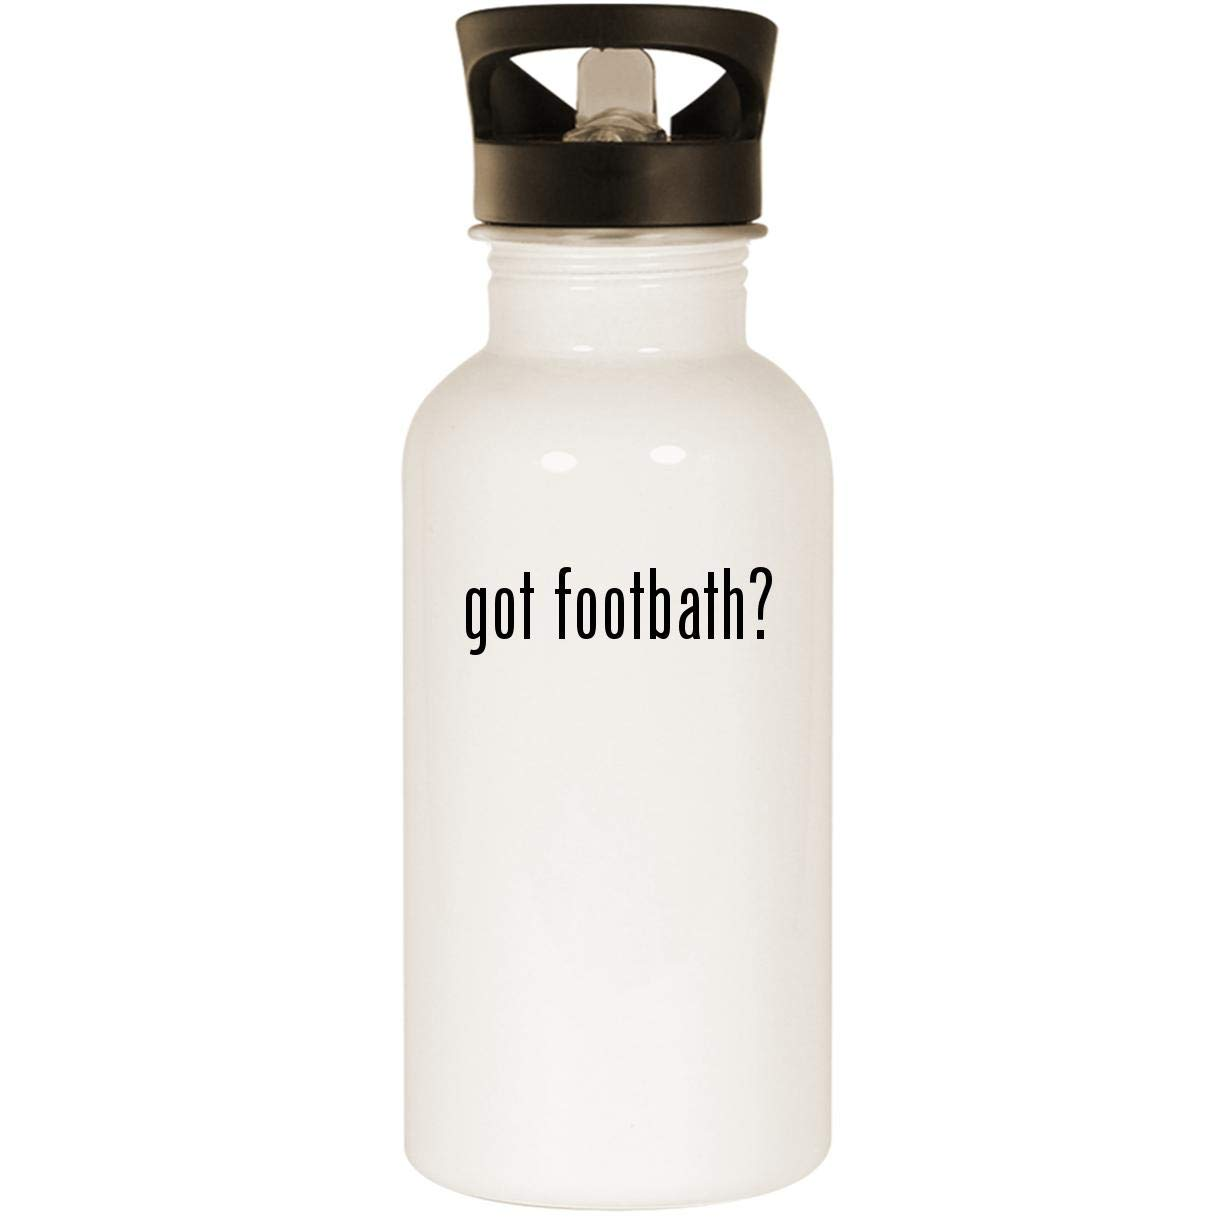 got footbath? - Stainless Steel 20oz Road Ready Water Bottle, White